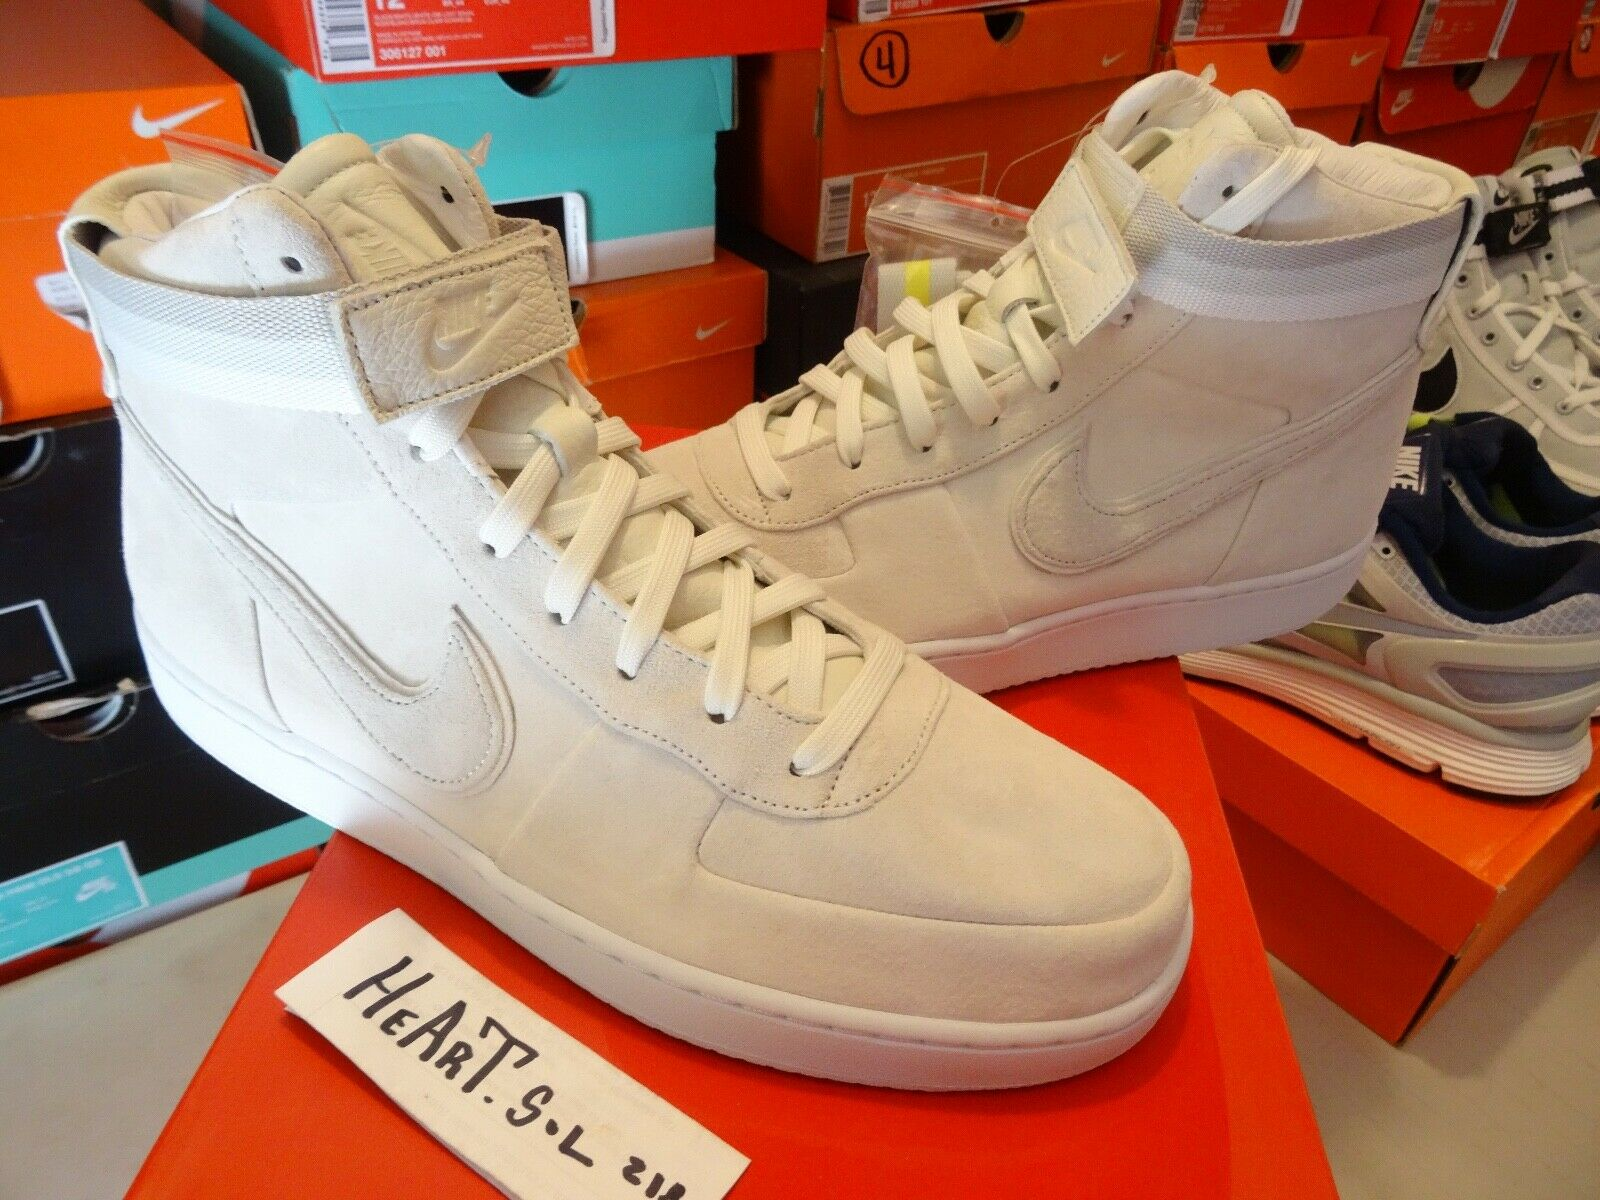 Nike x John Elliot Vandal High PRM  Sail  size 11.5 - AH7171-101 Lebron Icon Air